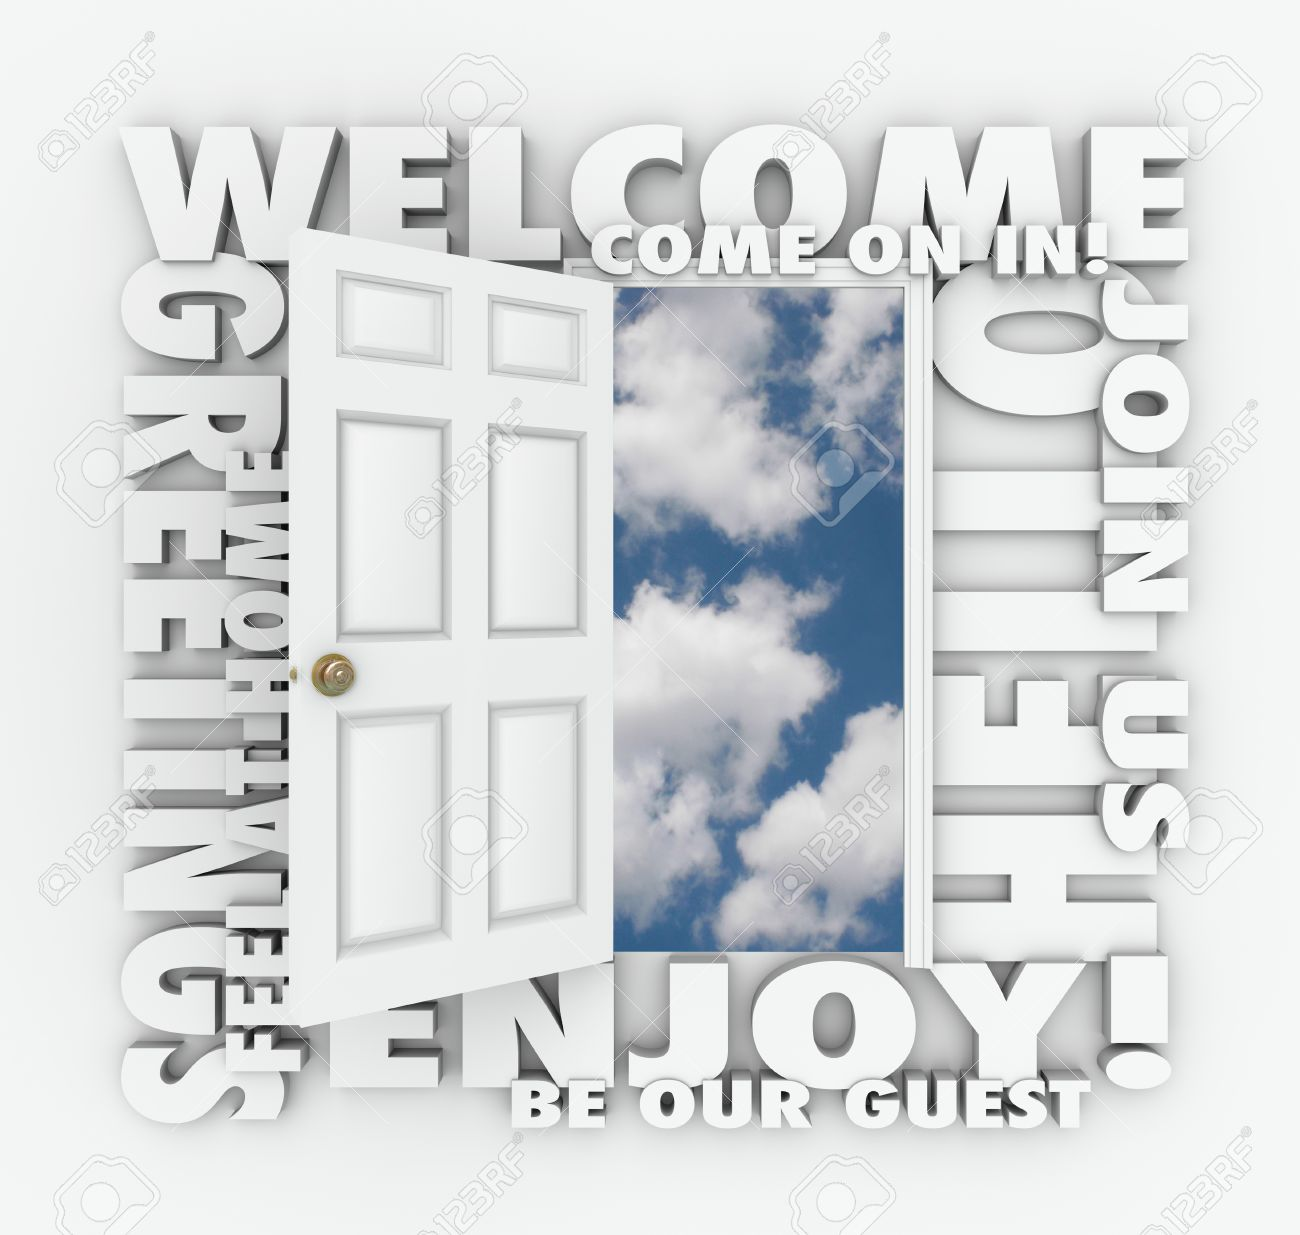 Welcome words around an open door to illustrate concepts like stock photo welcome words around an open door to illustrate concepts like invitation greetings enjoyment guest service friendliness and joining m4hsunfo